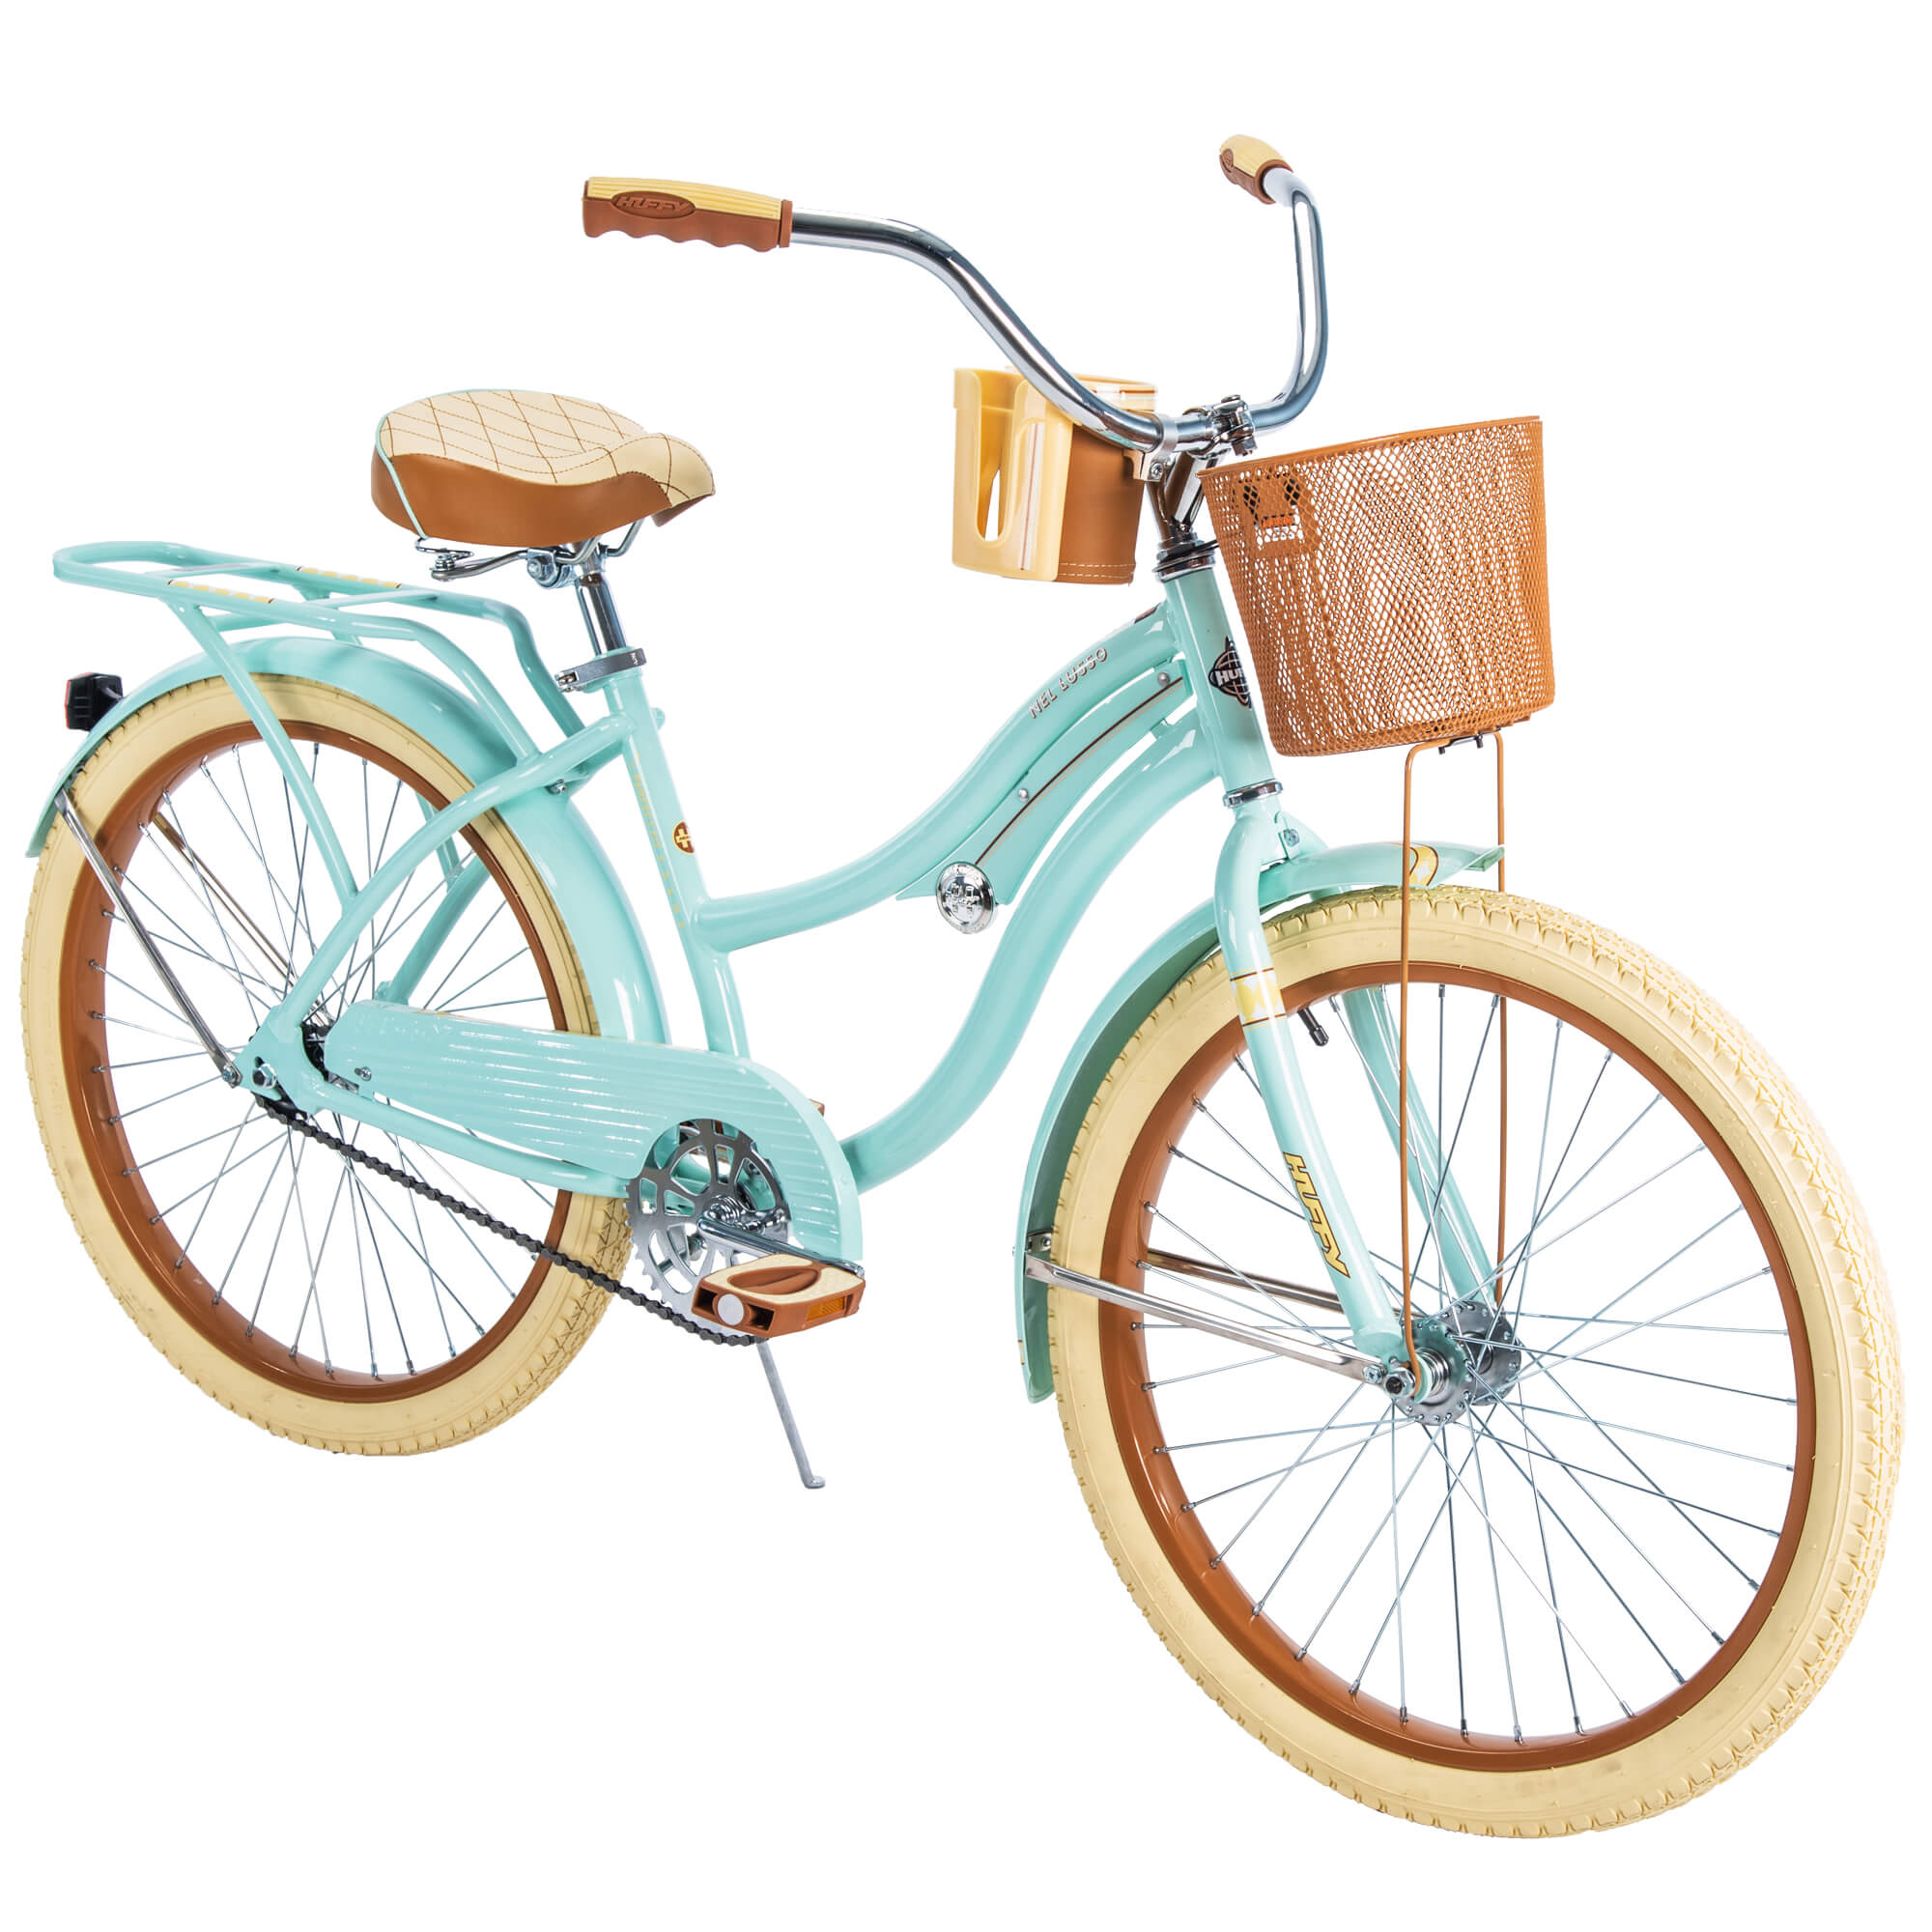 "Huffy 24"" Nel Lusso Girls' Cruiser Bike with Perfect Fit Frame, Mint Green by Huffy"